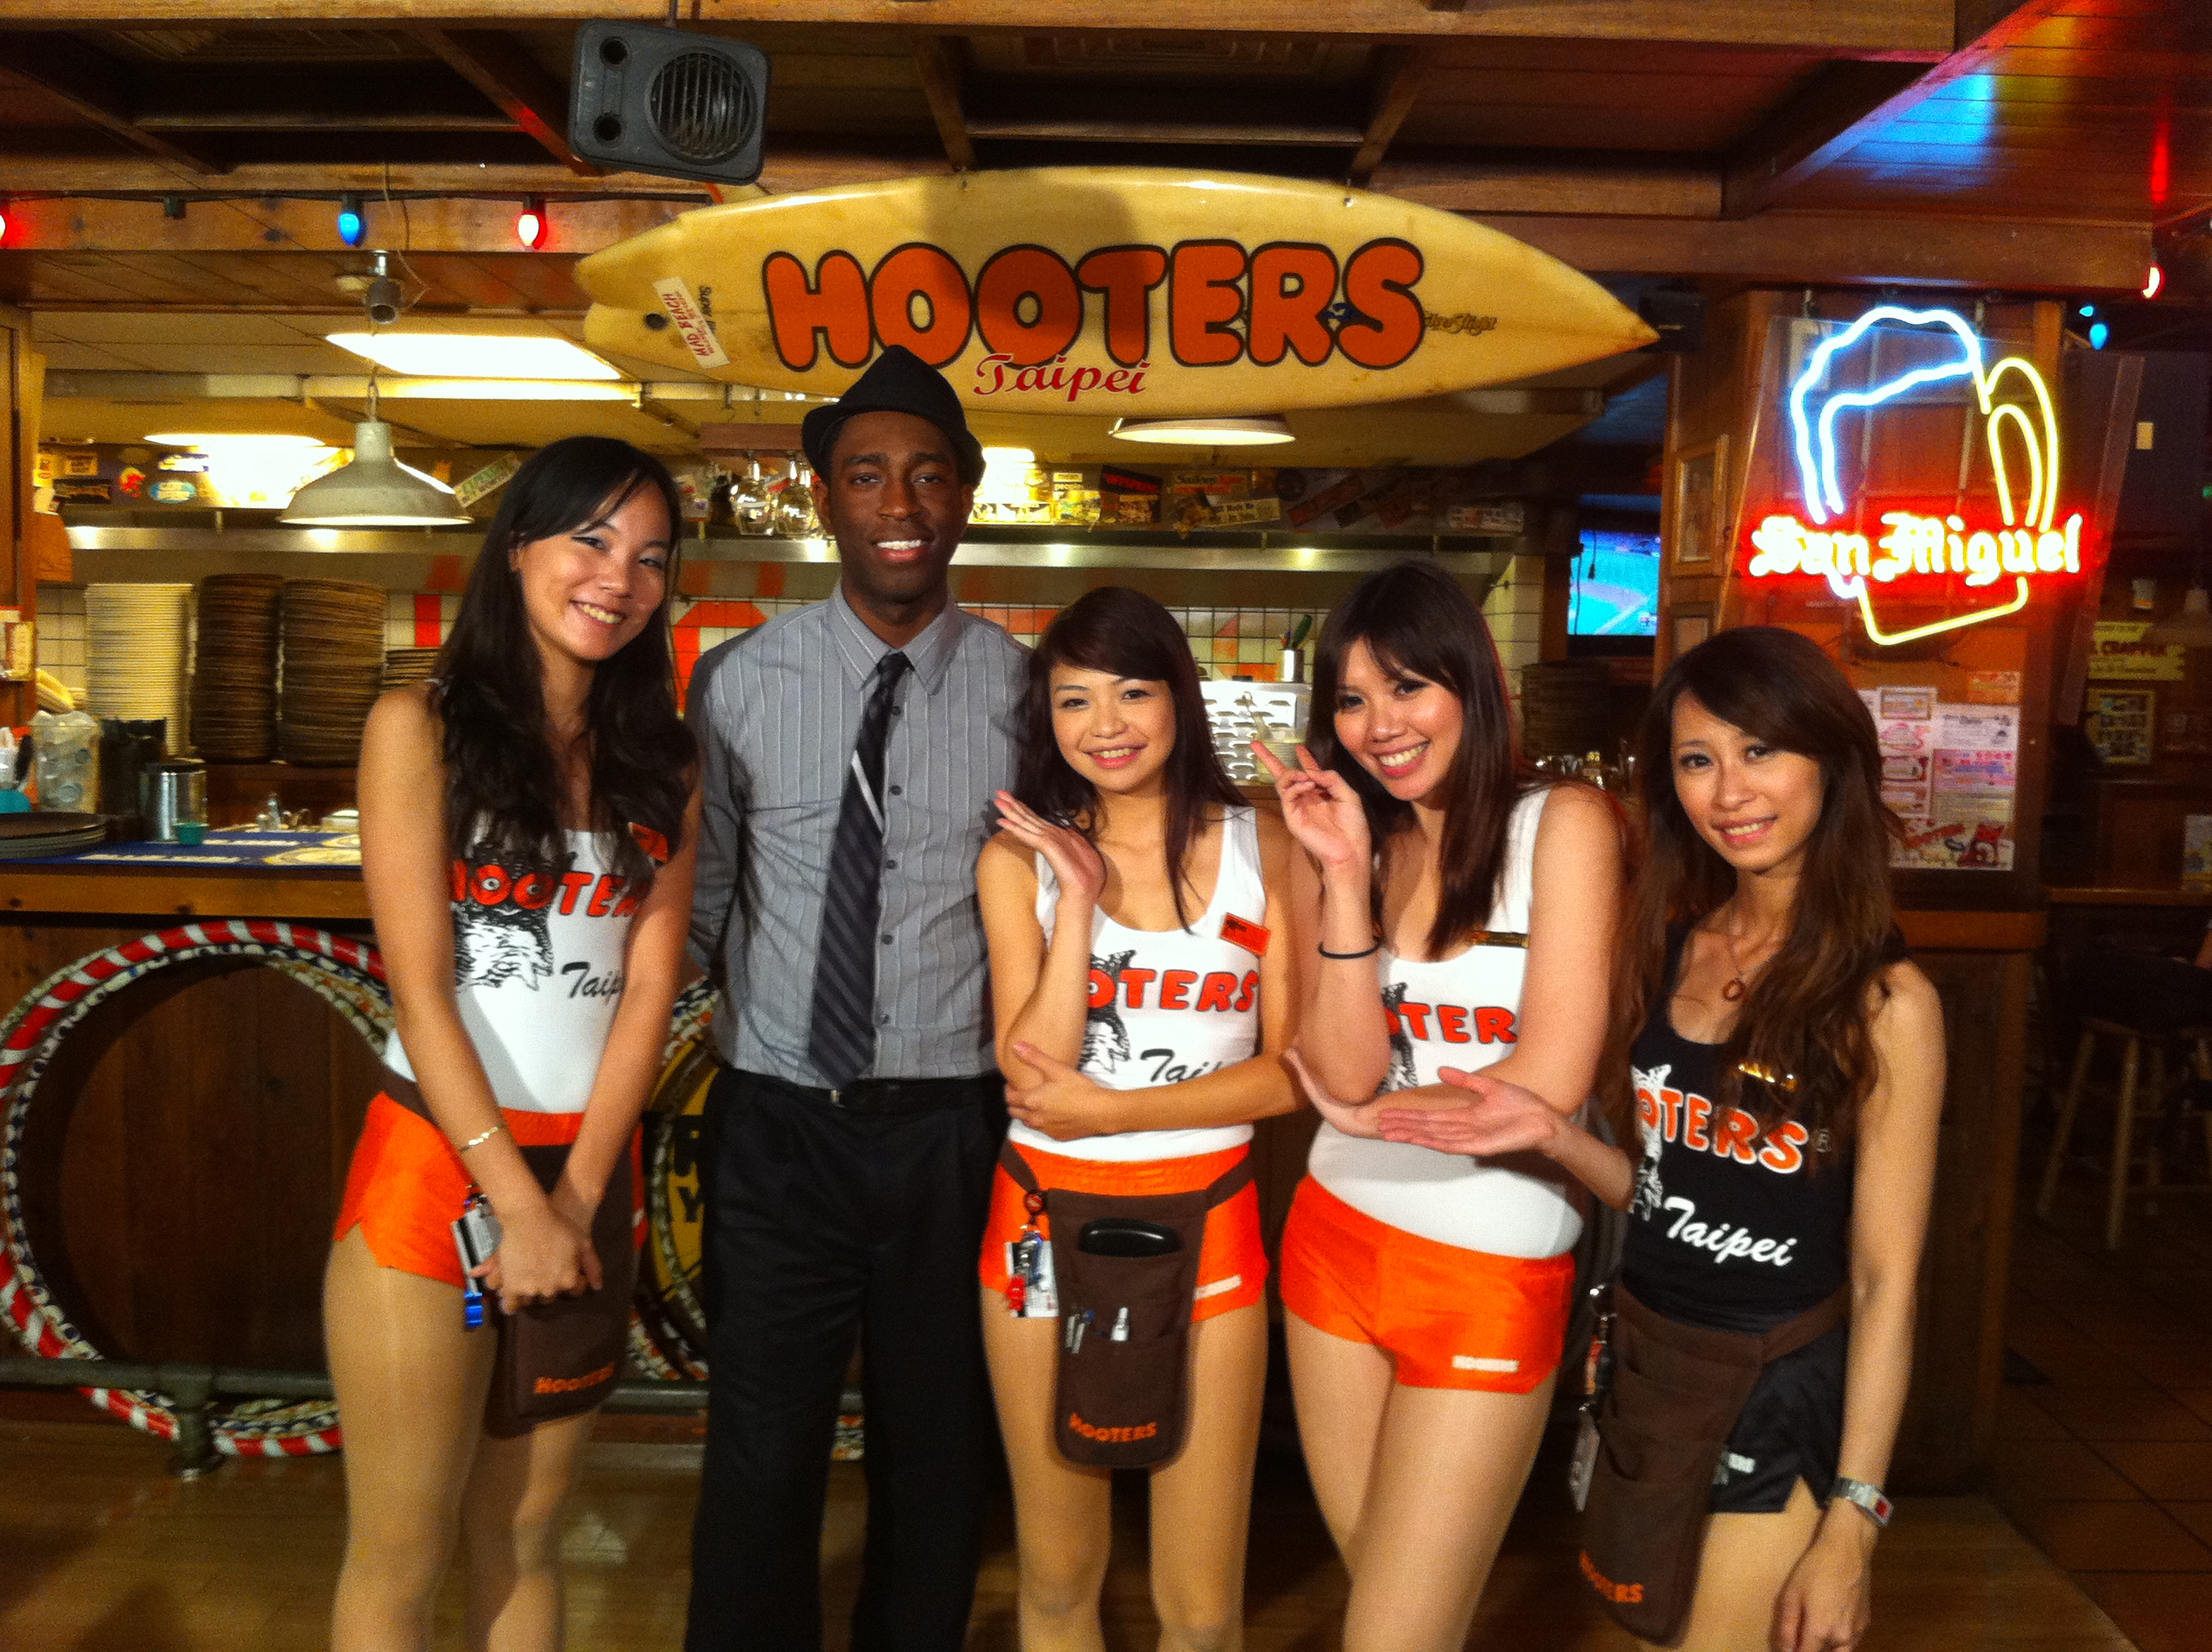 Dating a hooters waitress — 15